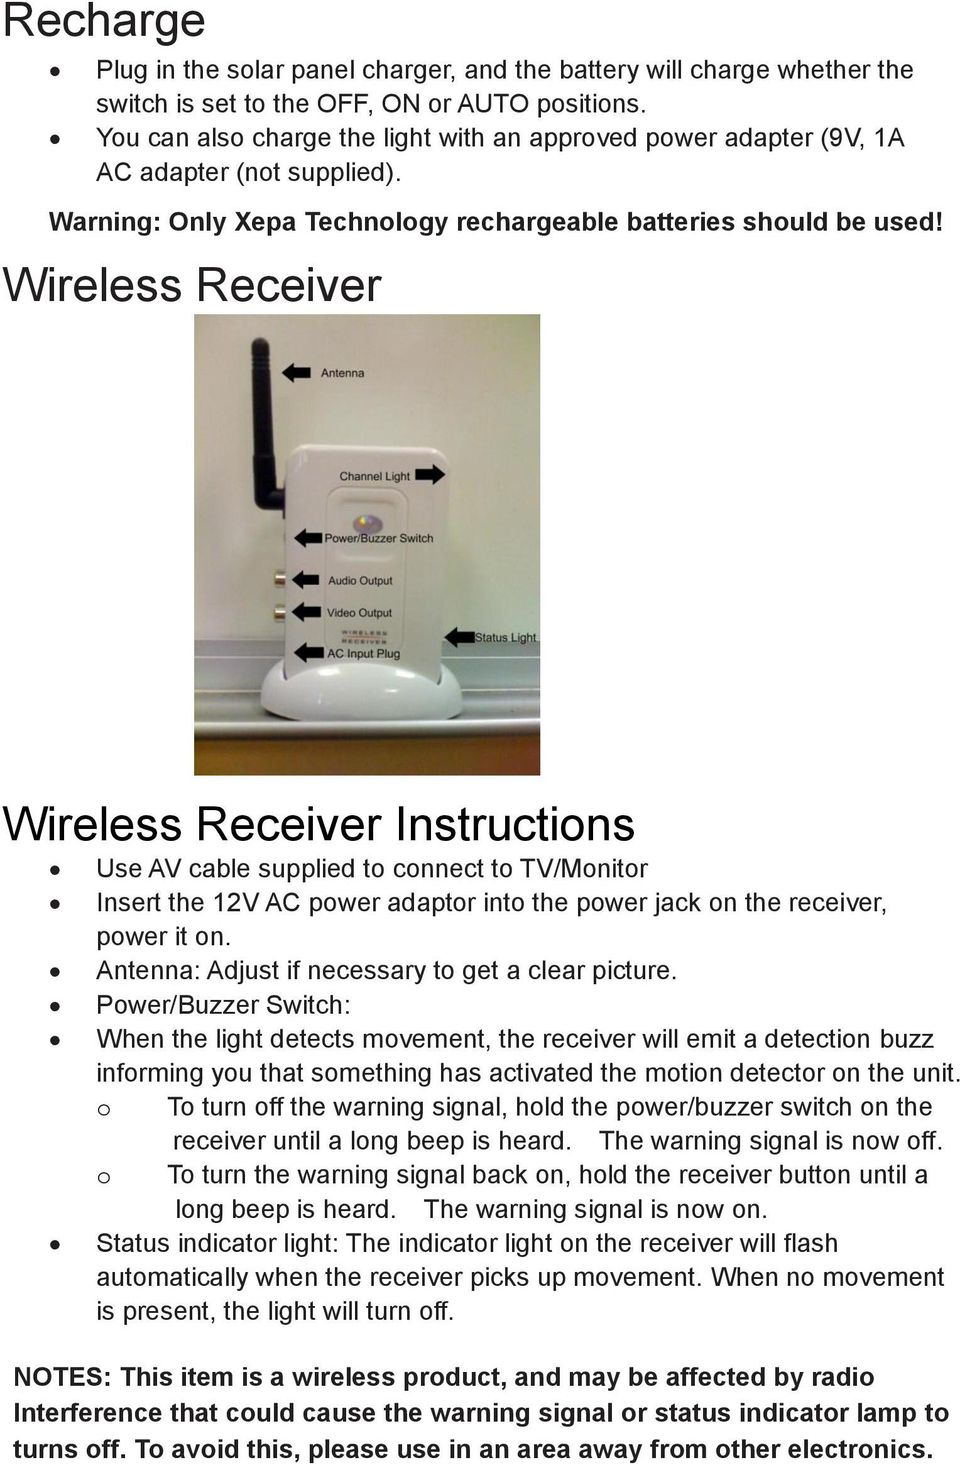 Wireless Receiver Wireless Receiver Instructions Use AV cable supplied to connect to TV/Monitor Insert the 12V AC power adaptor into the power jack on the receiver, power it on.